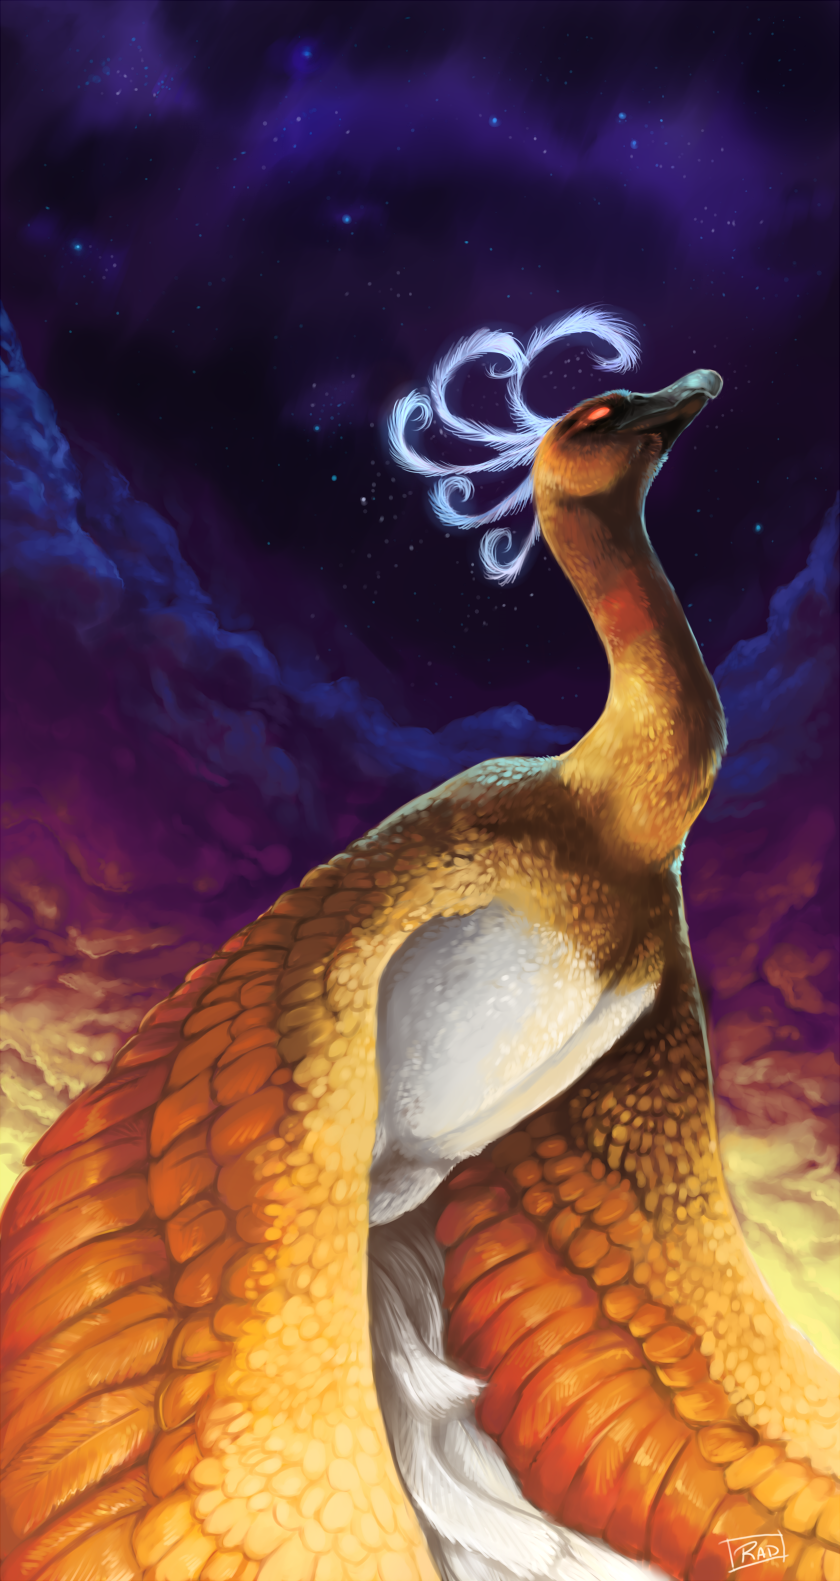 bird cloud clouds creature glowing glowing_eyes highres ho-oh looking_away looking_up night night_sky no_humans outdoors pokemon purple_sky rajewel realistic shiny_pokemon signature sky solo star_(sky) starry_sky